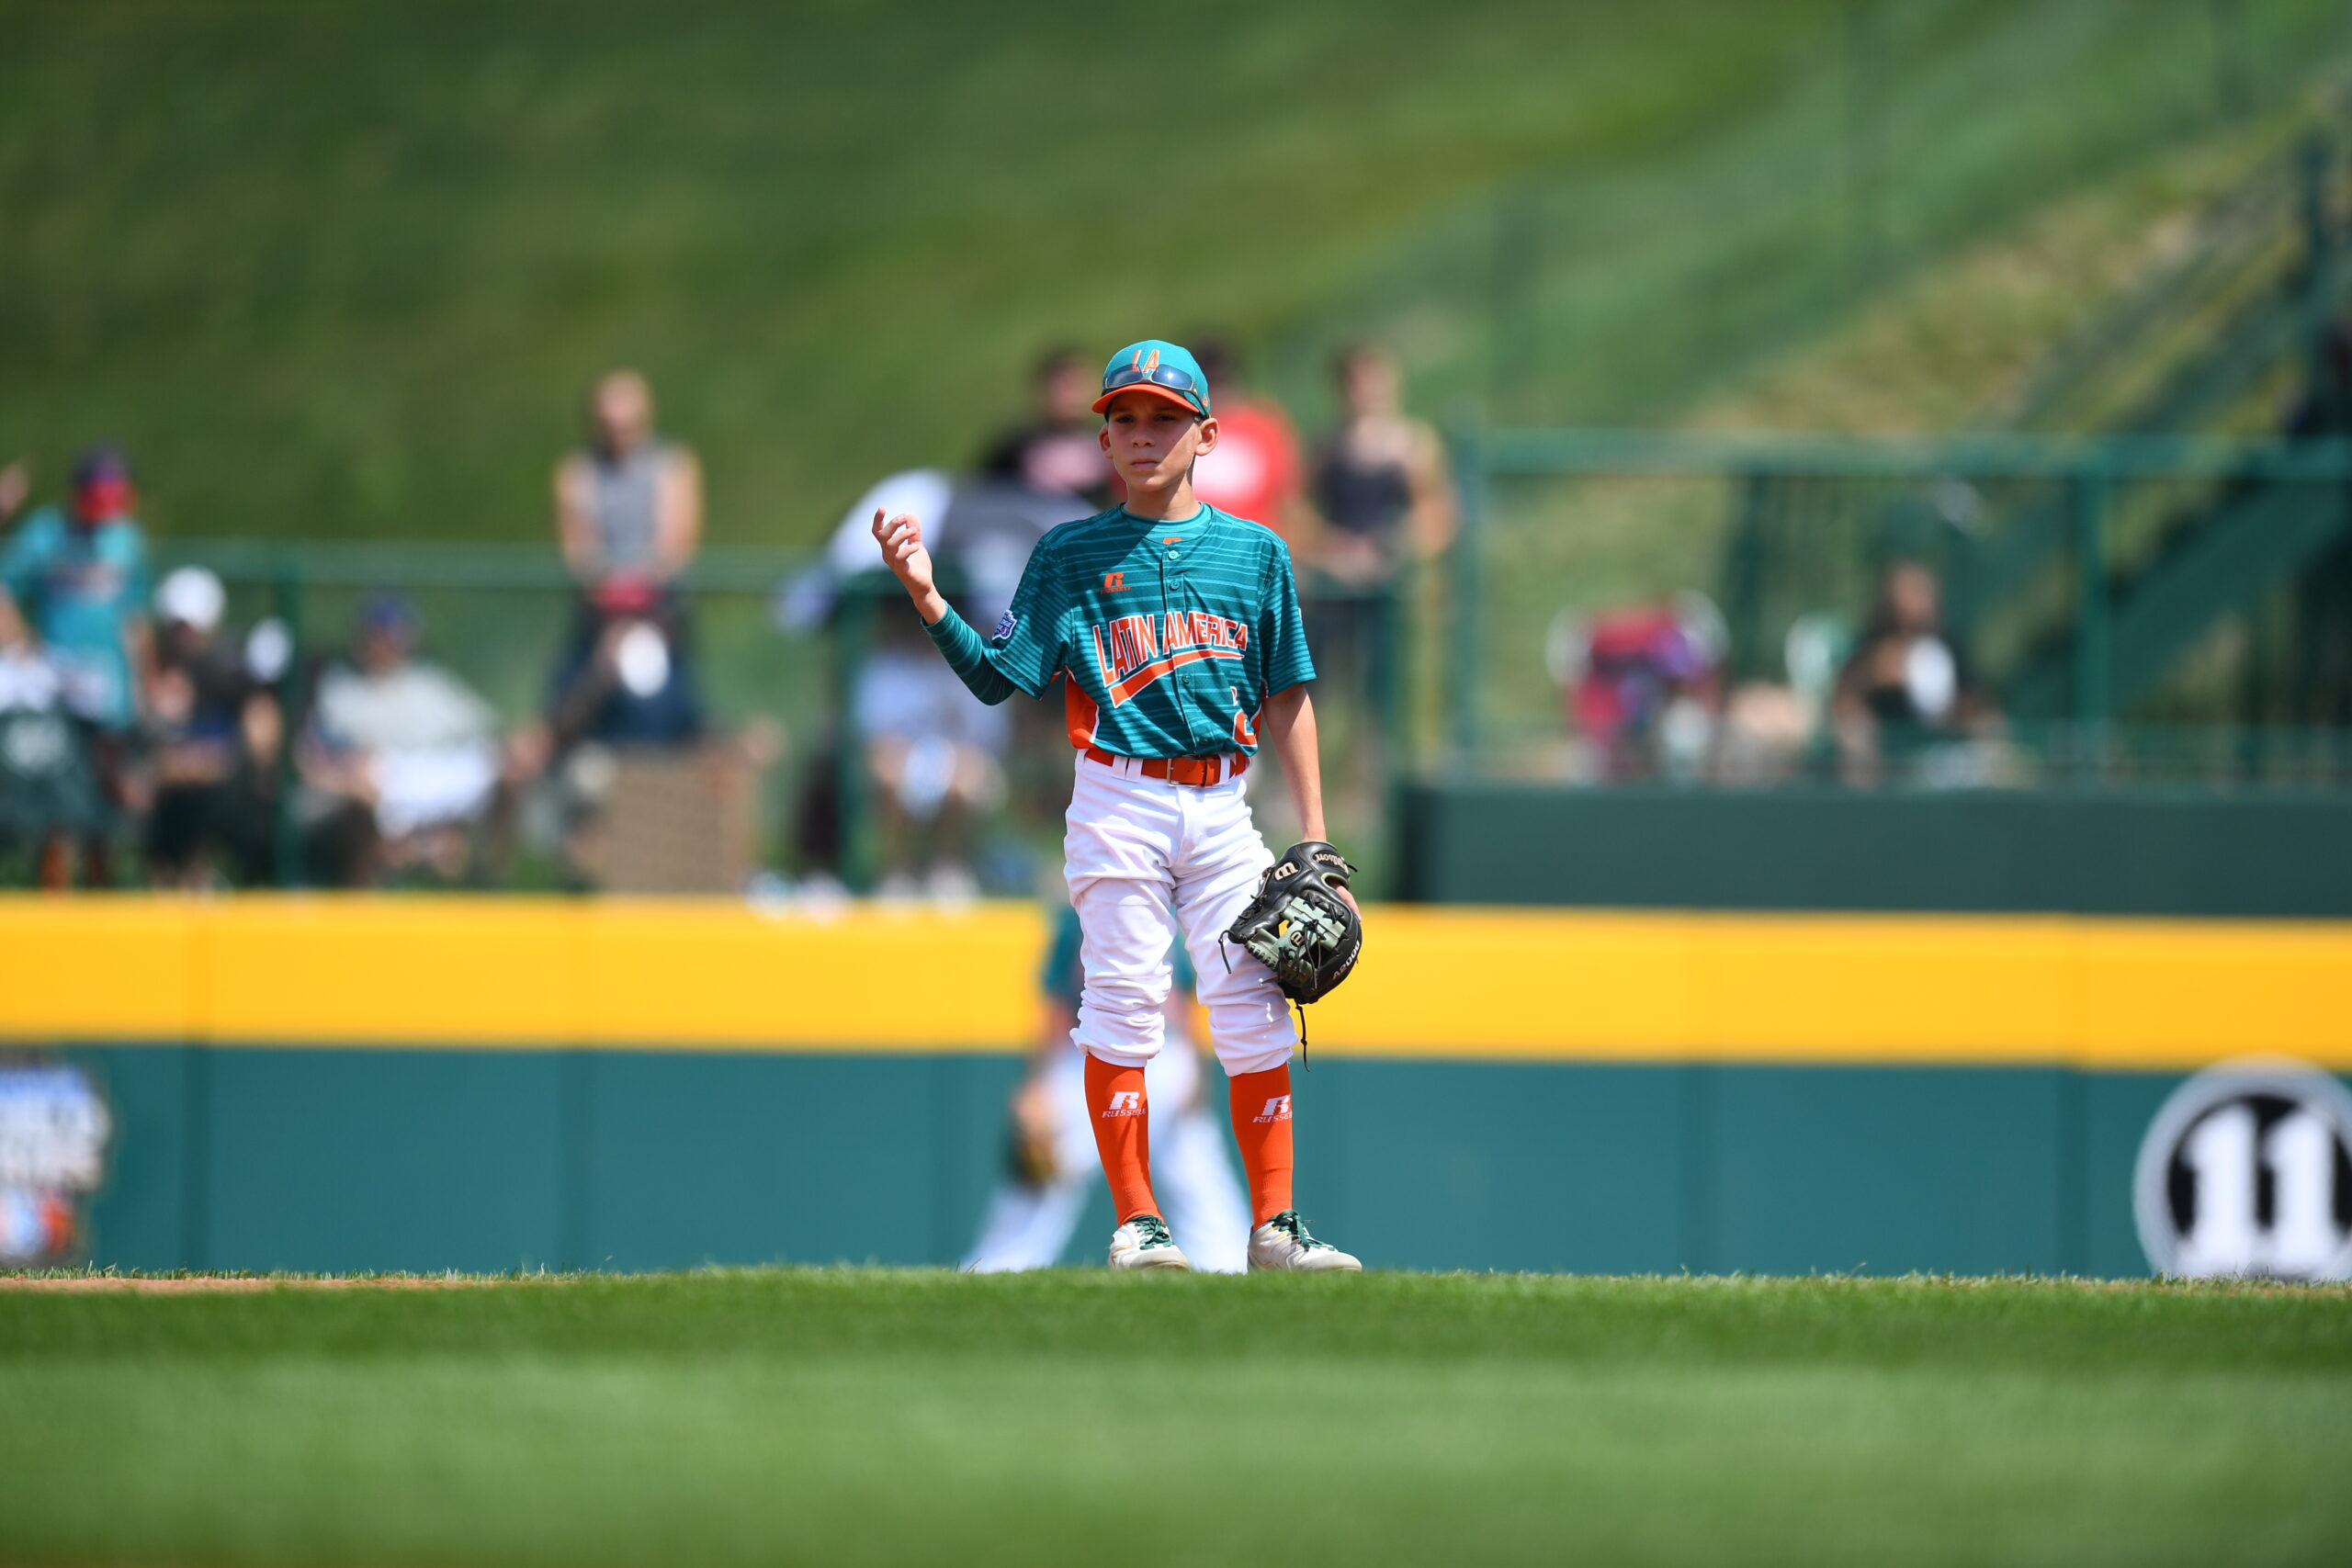 Little League World Series Youth Sports